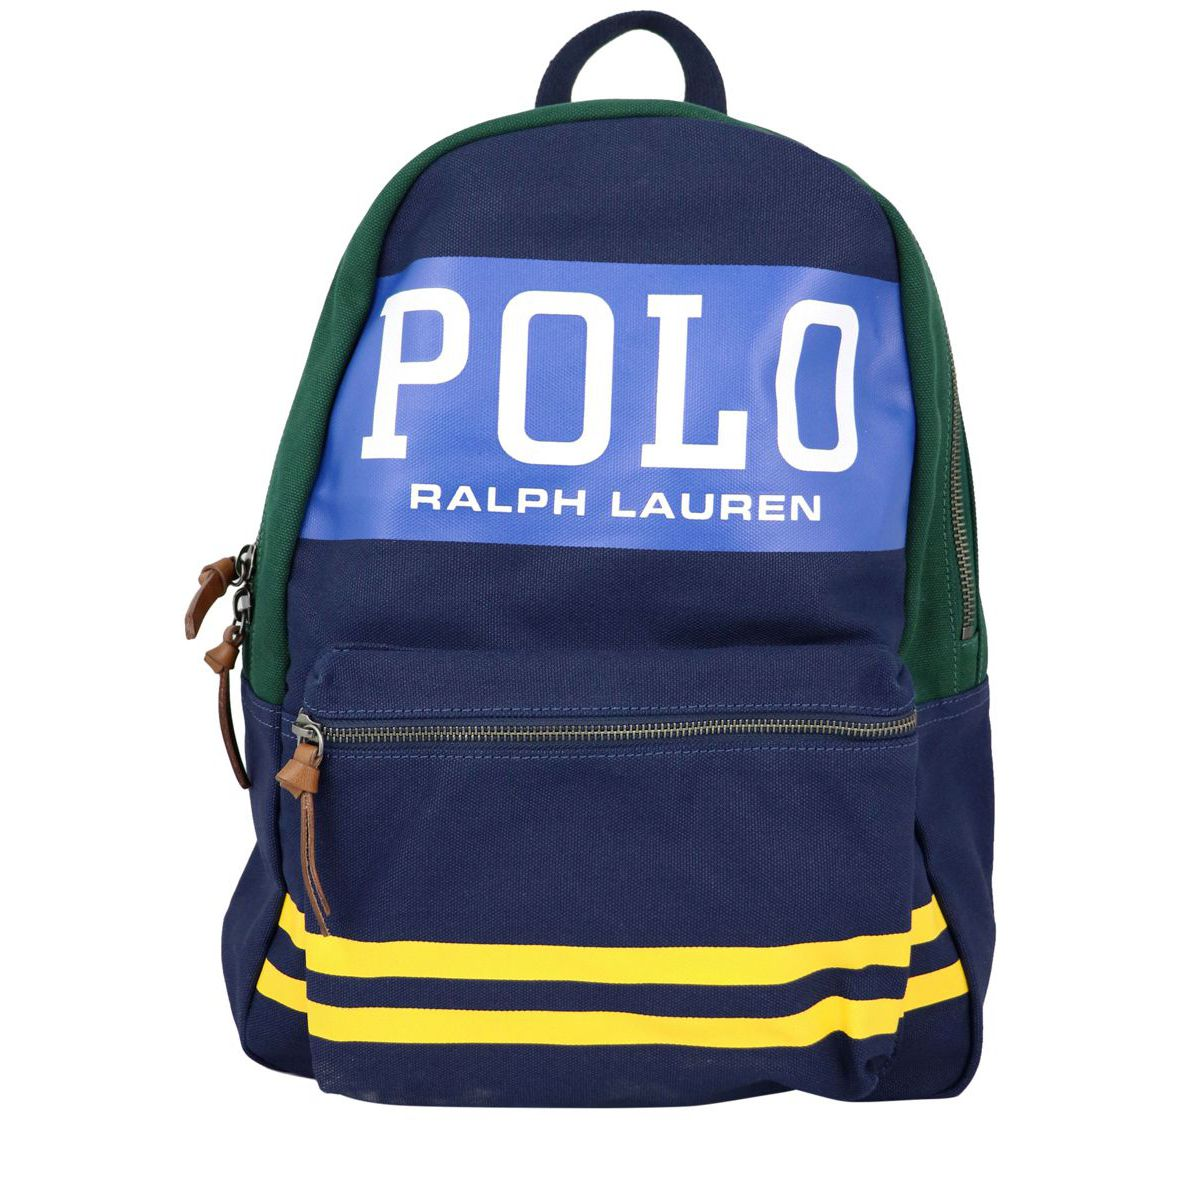 2-pocket backpack with logo print Navy Polo Ralph Lauren